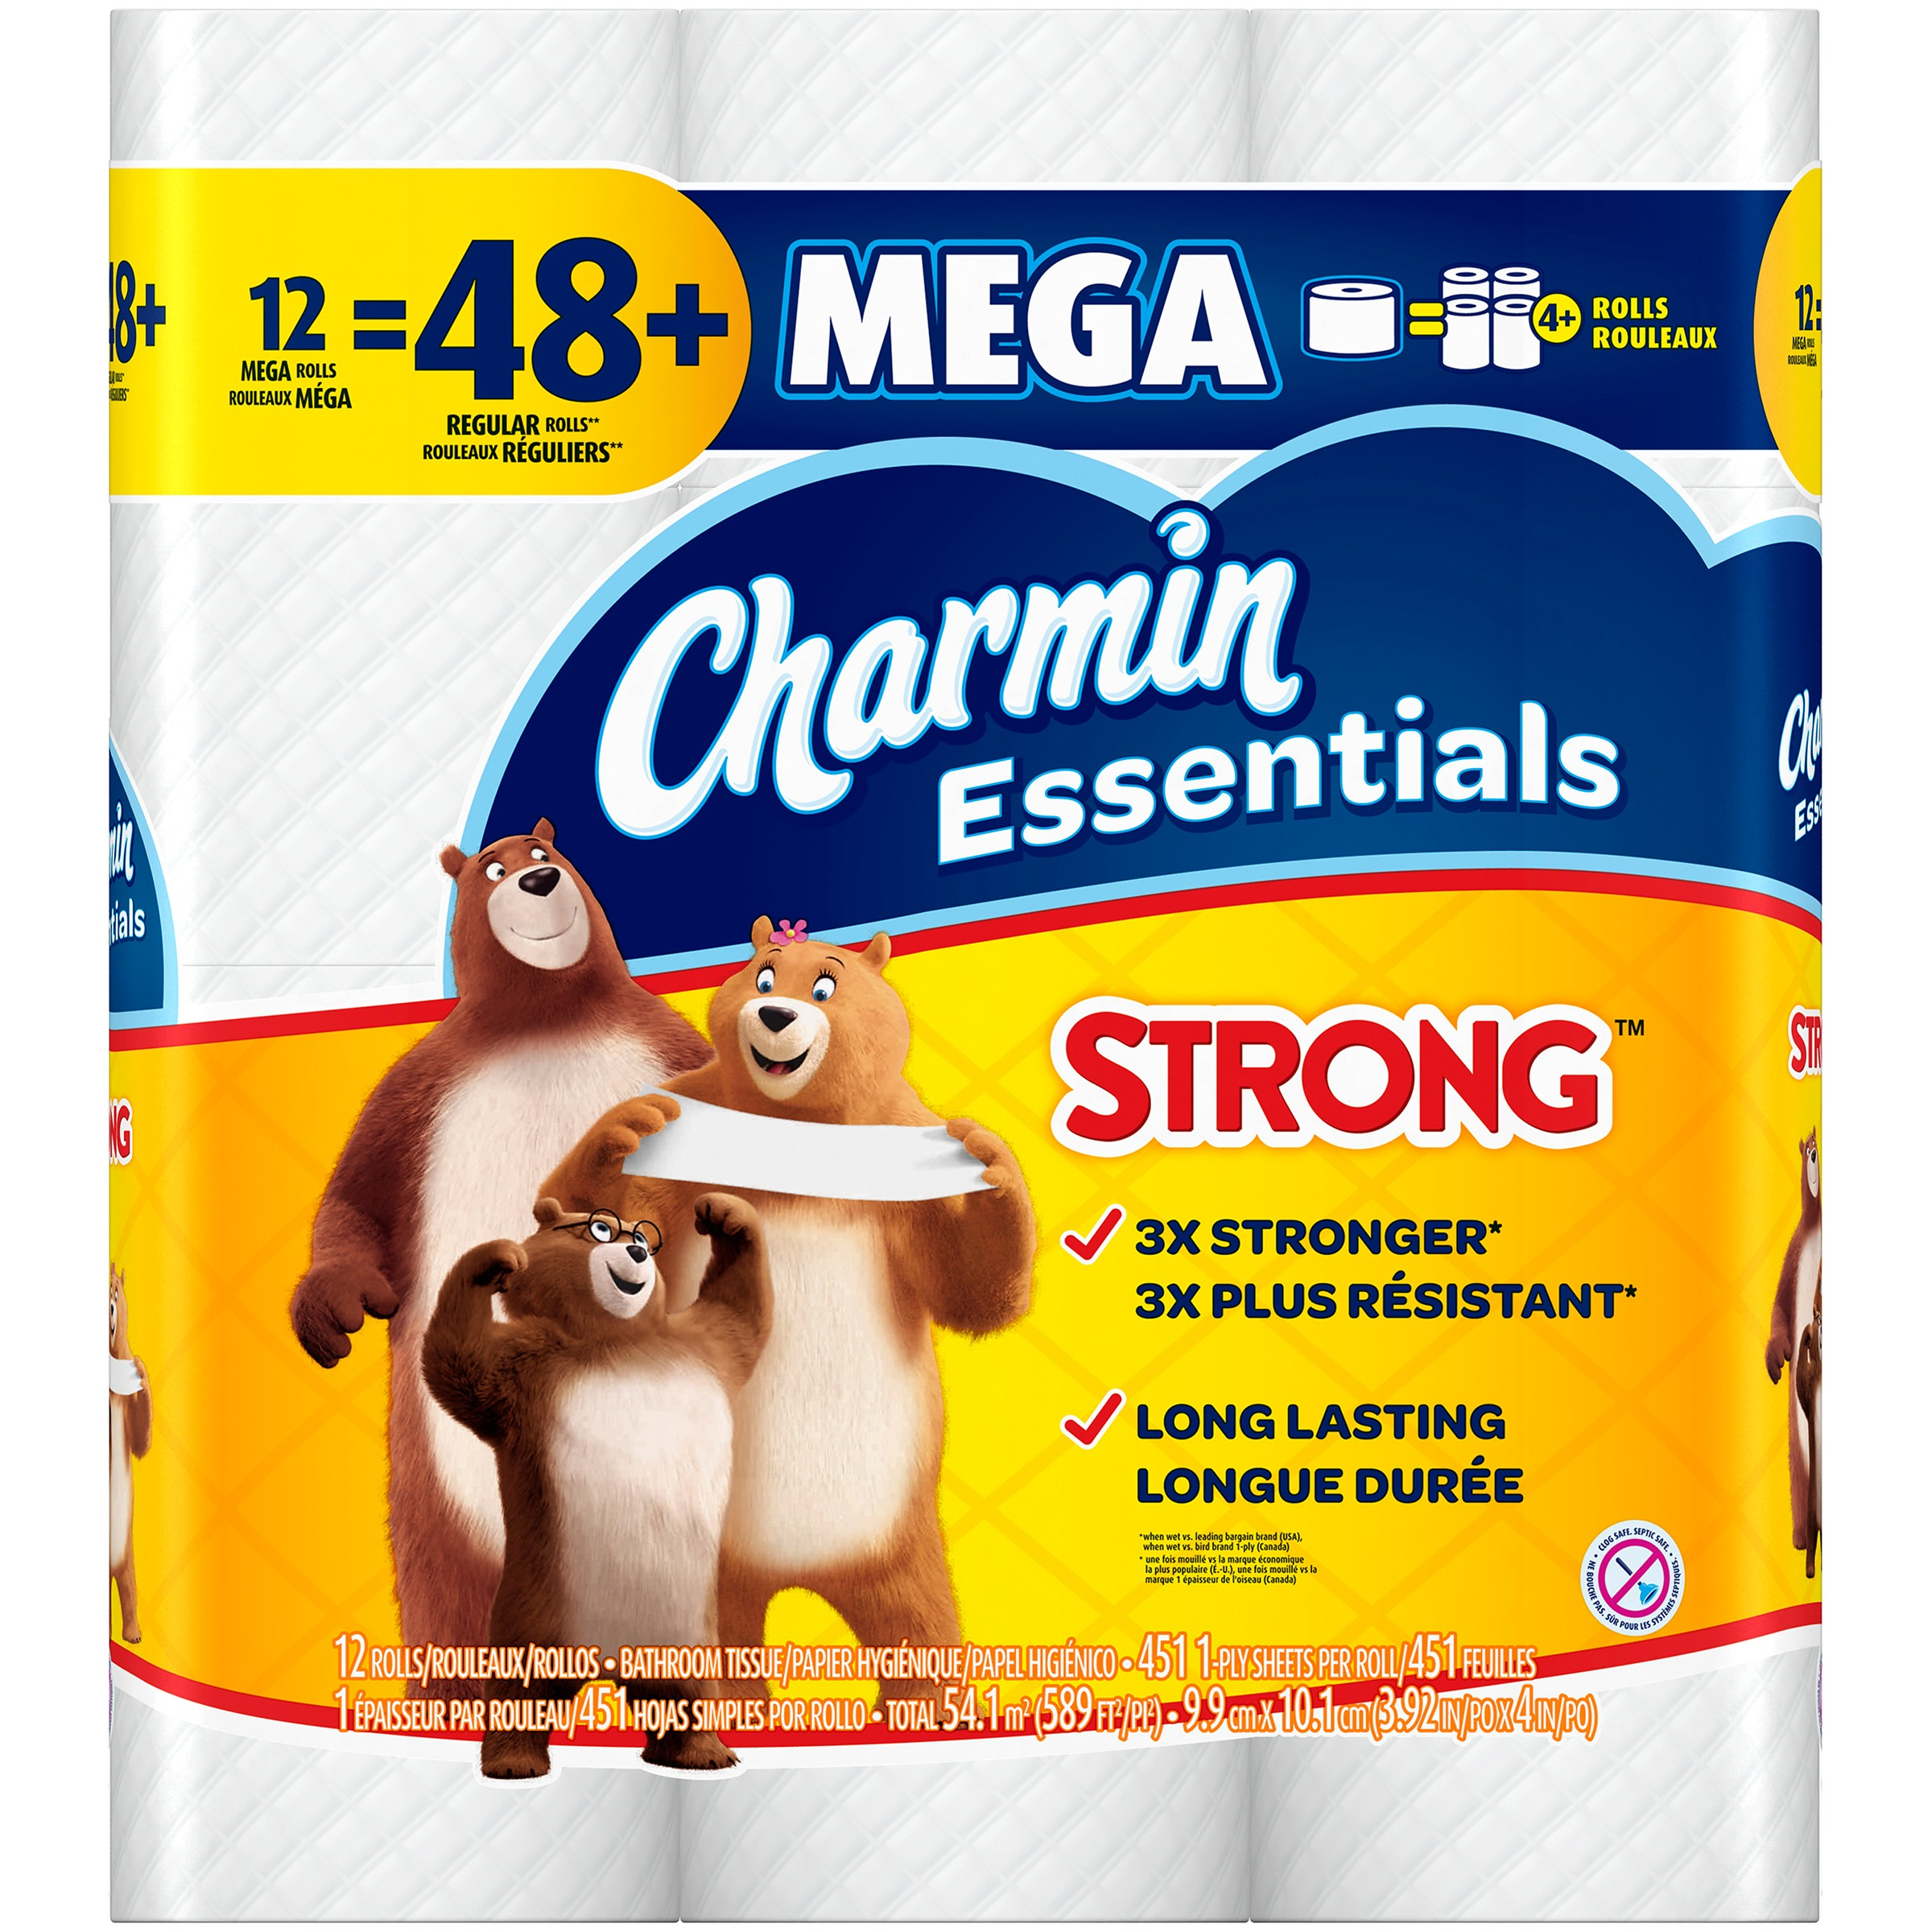 Charmin Essentials Strong Toilet Paper 12 Mega Rolls